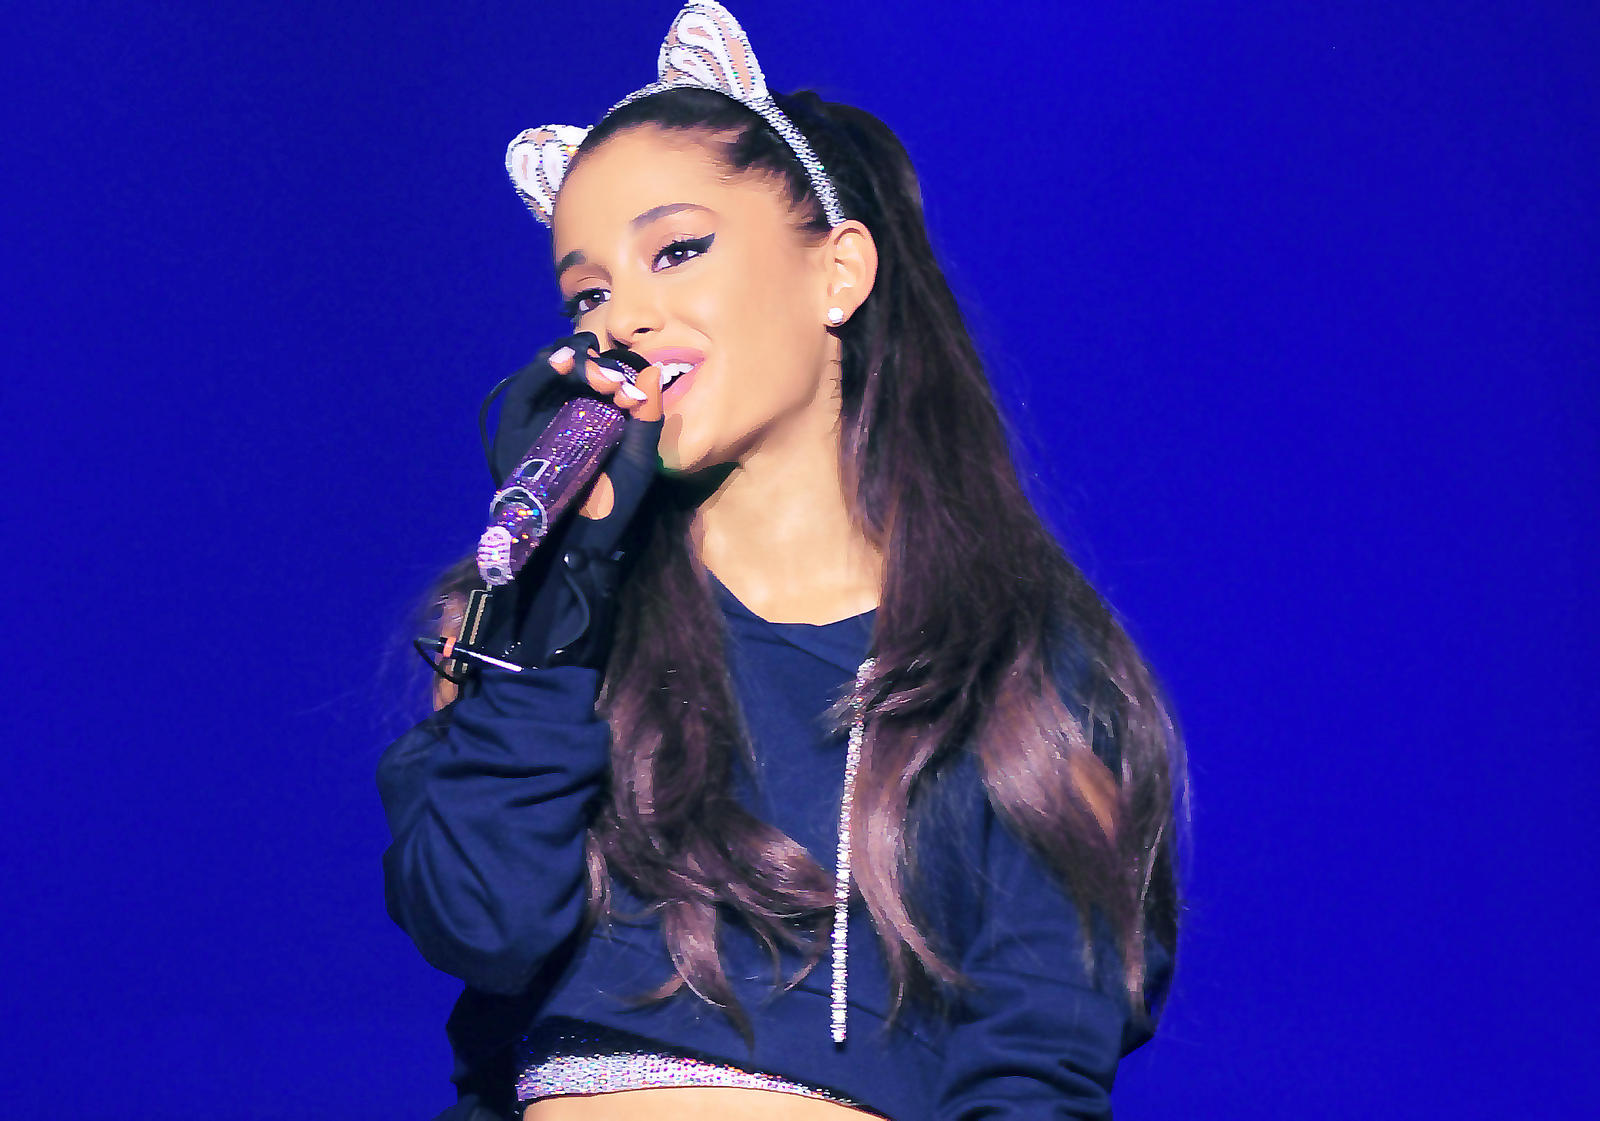 Ariana Grande Wallpapers-28 - GotCeleb: Wallpapers